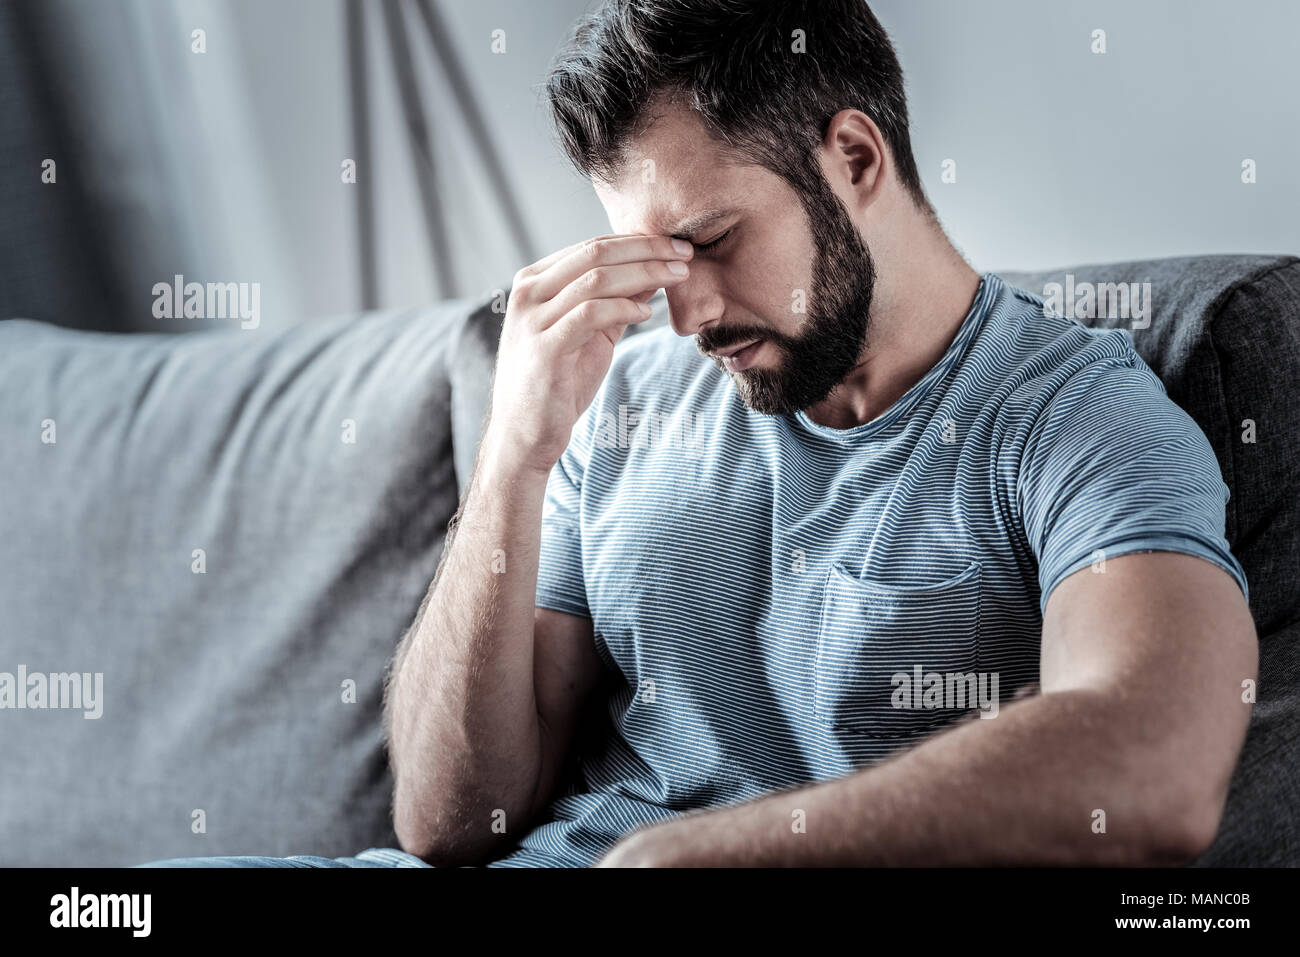 Sad unhappy man feeling tired - Stock Image